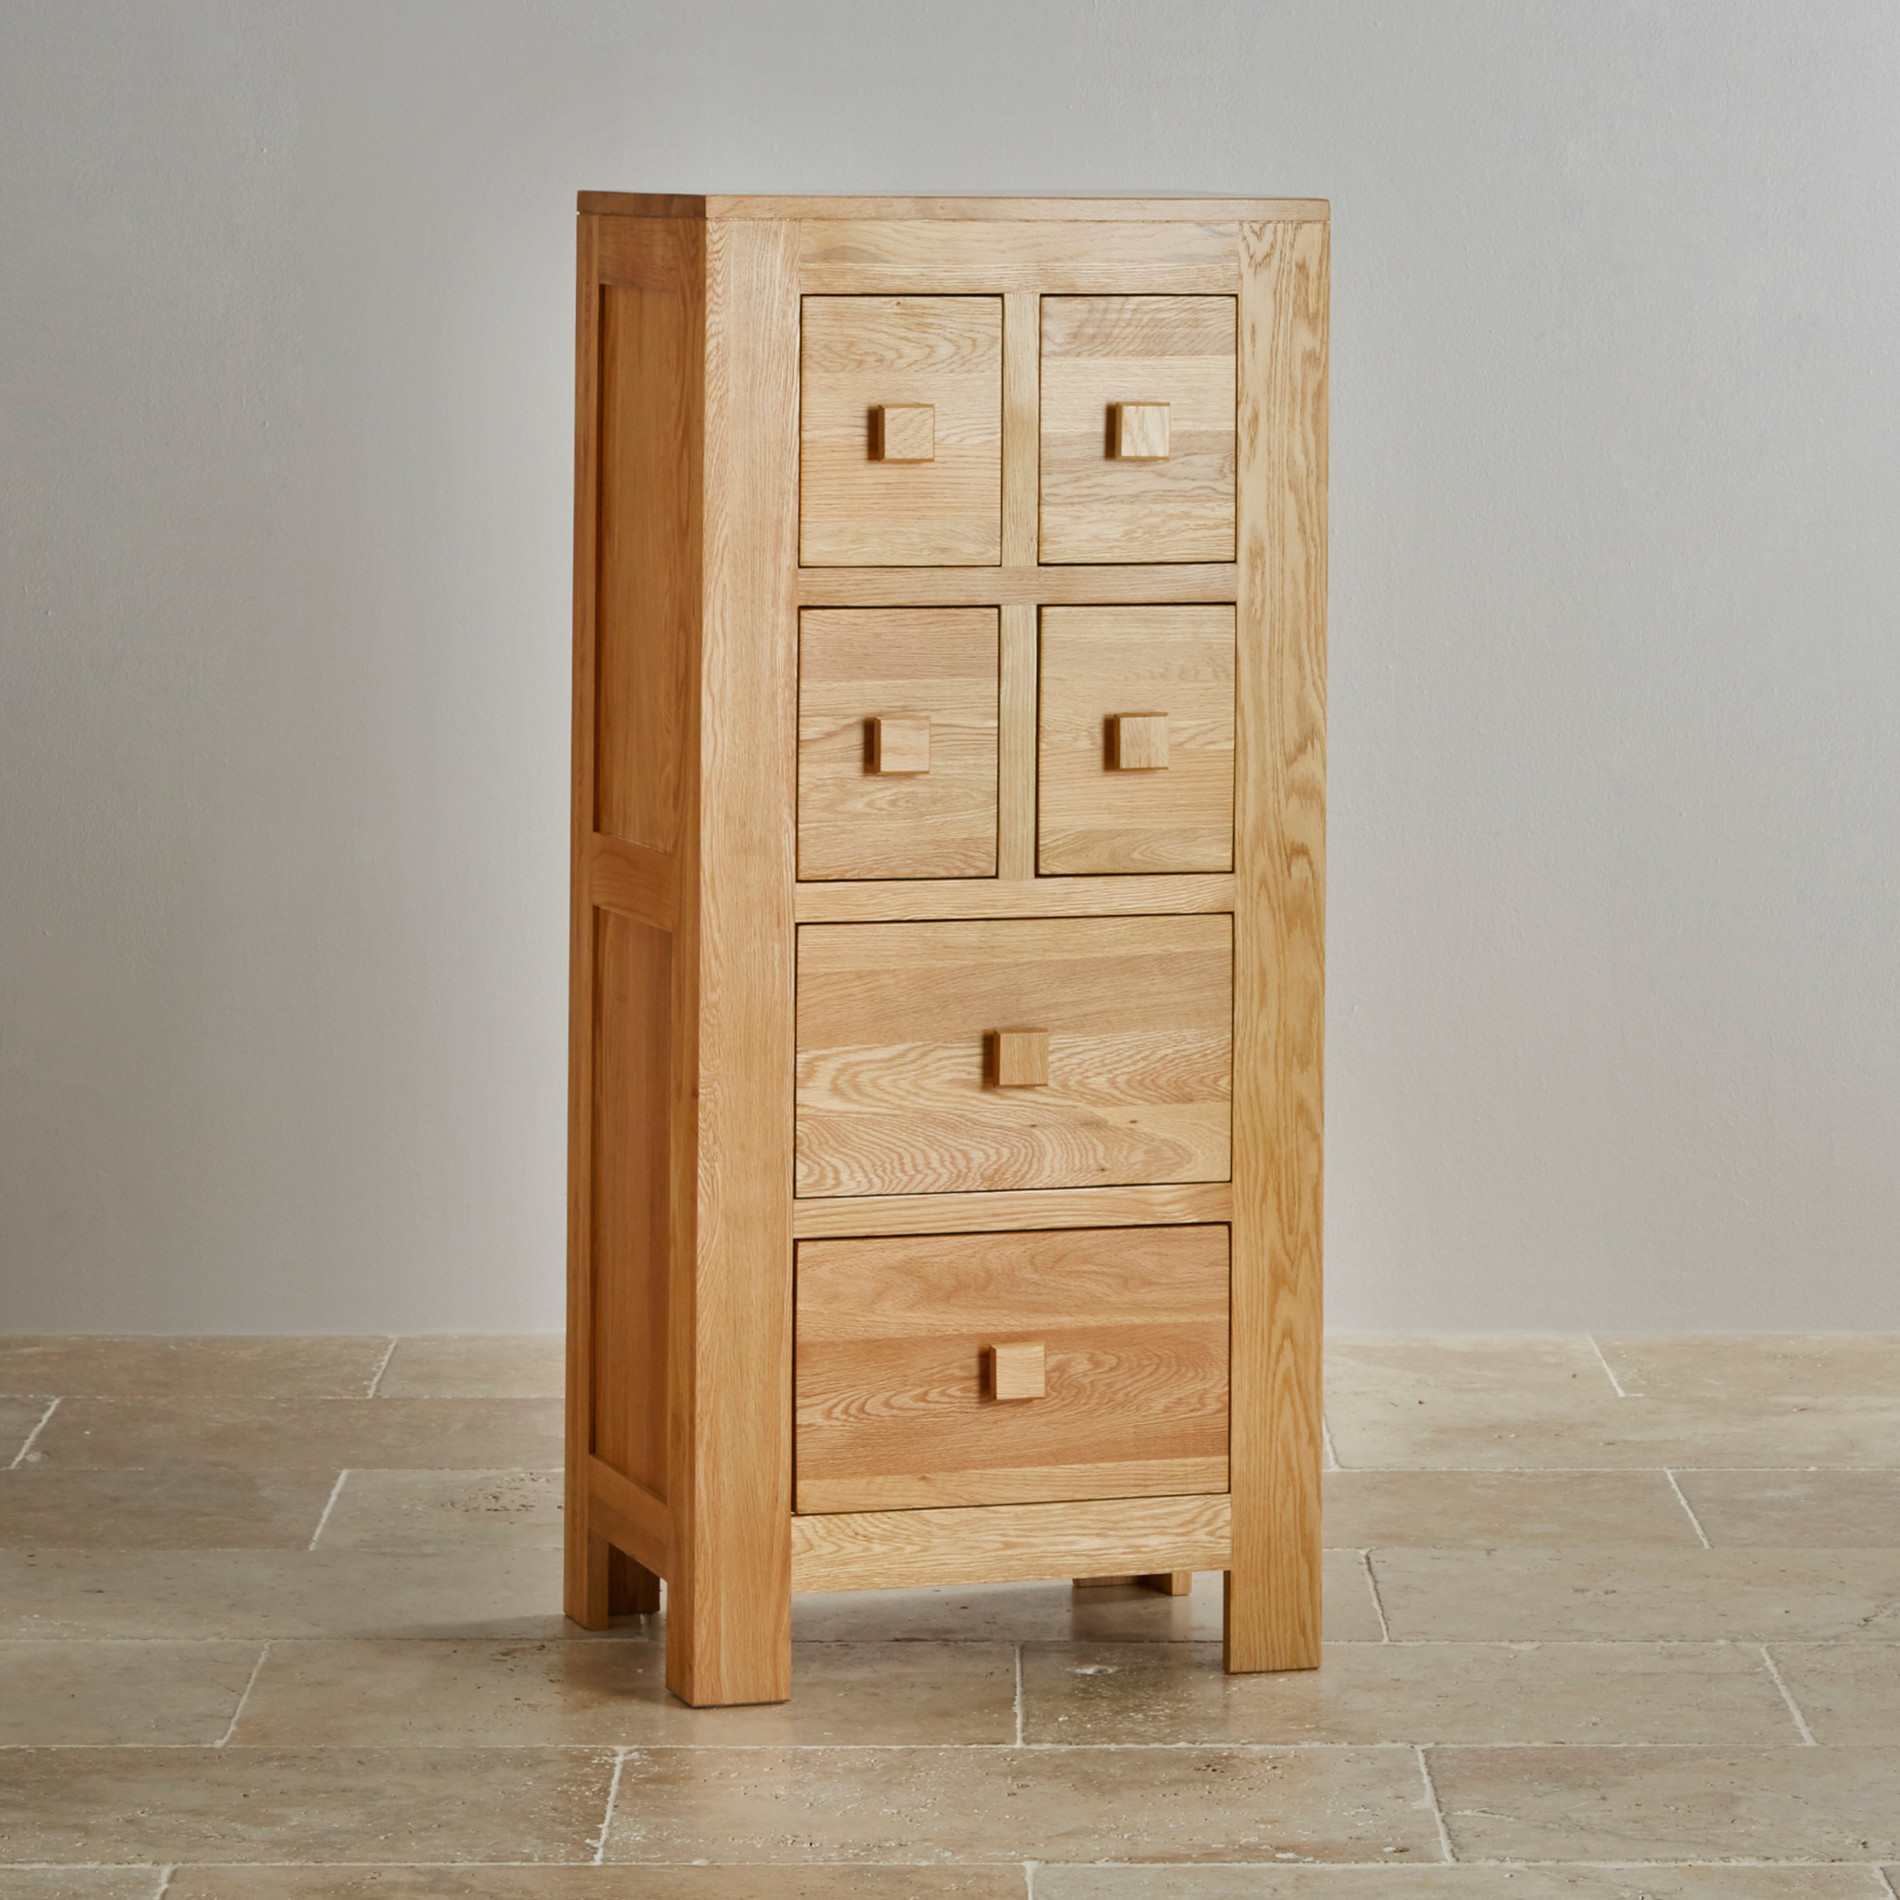 luxury wooden furniture storage. Luxury Wooden Furniture Storage I